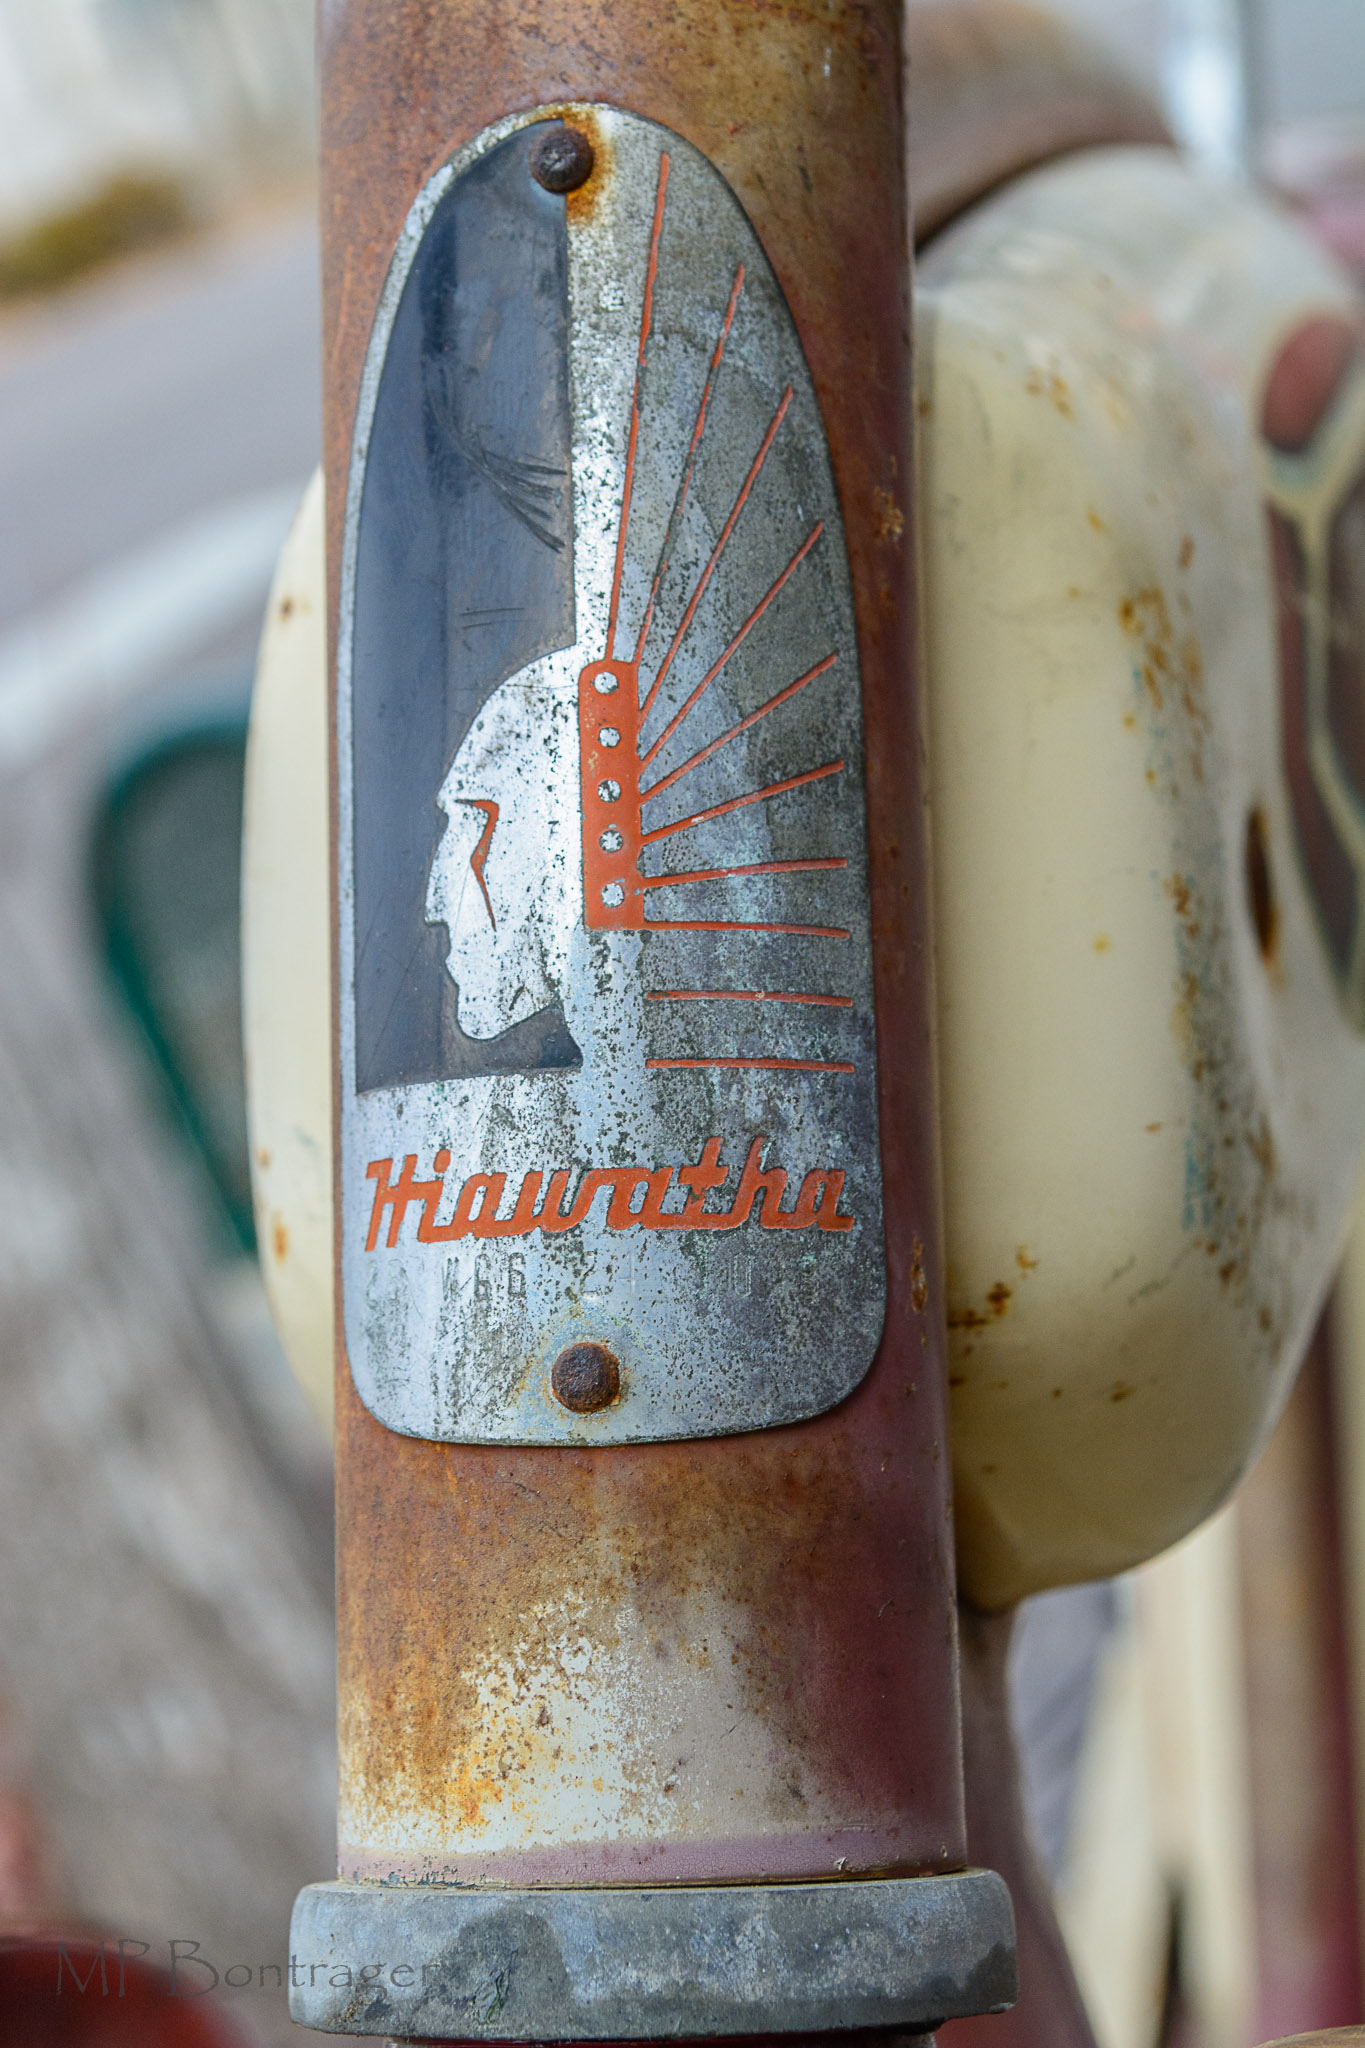 Art Deco design elements influenced this Head Badge art work